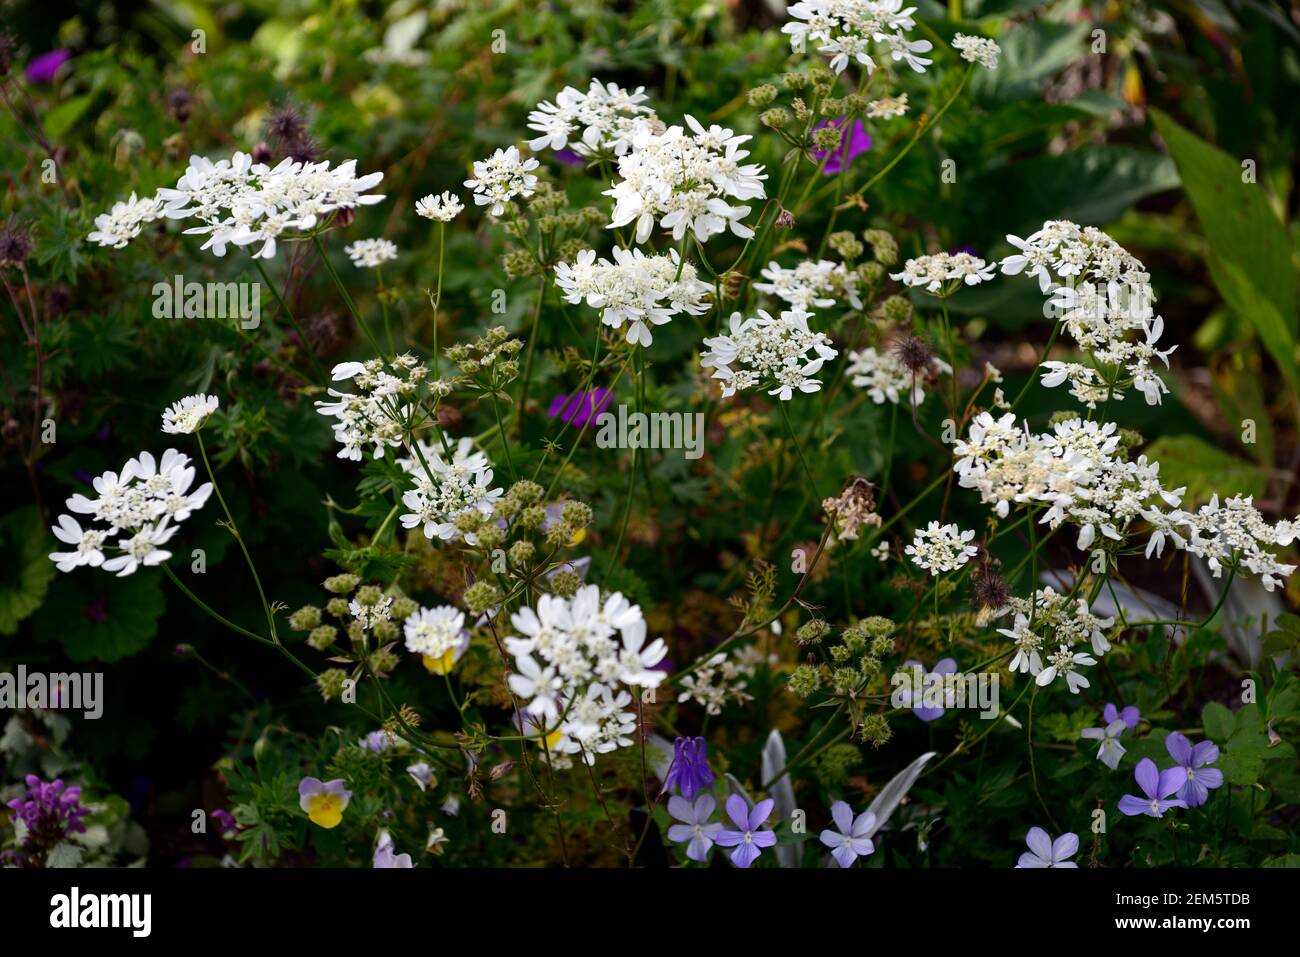 Orlaya grandiflora,white laceflower,multi-branched annual,divided ferny leaves,panicles, panicle white flowers,flowering annuals,RM floral Stock Photo